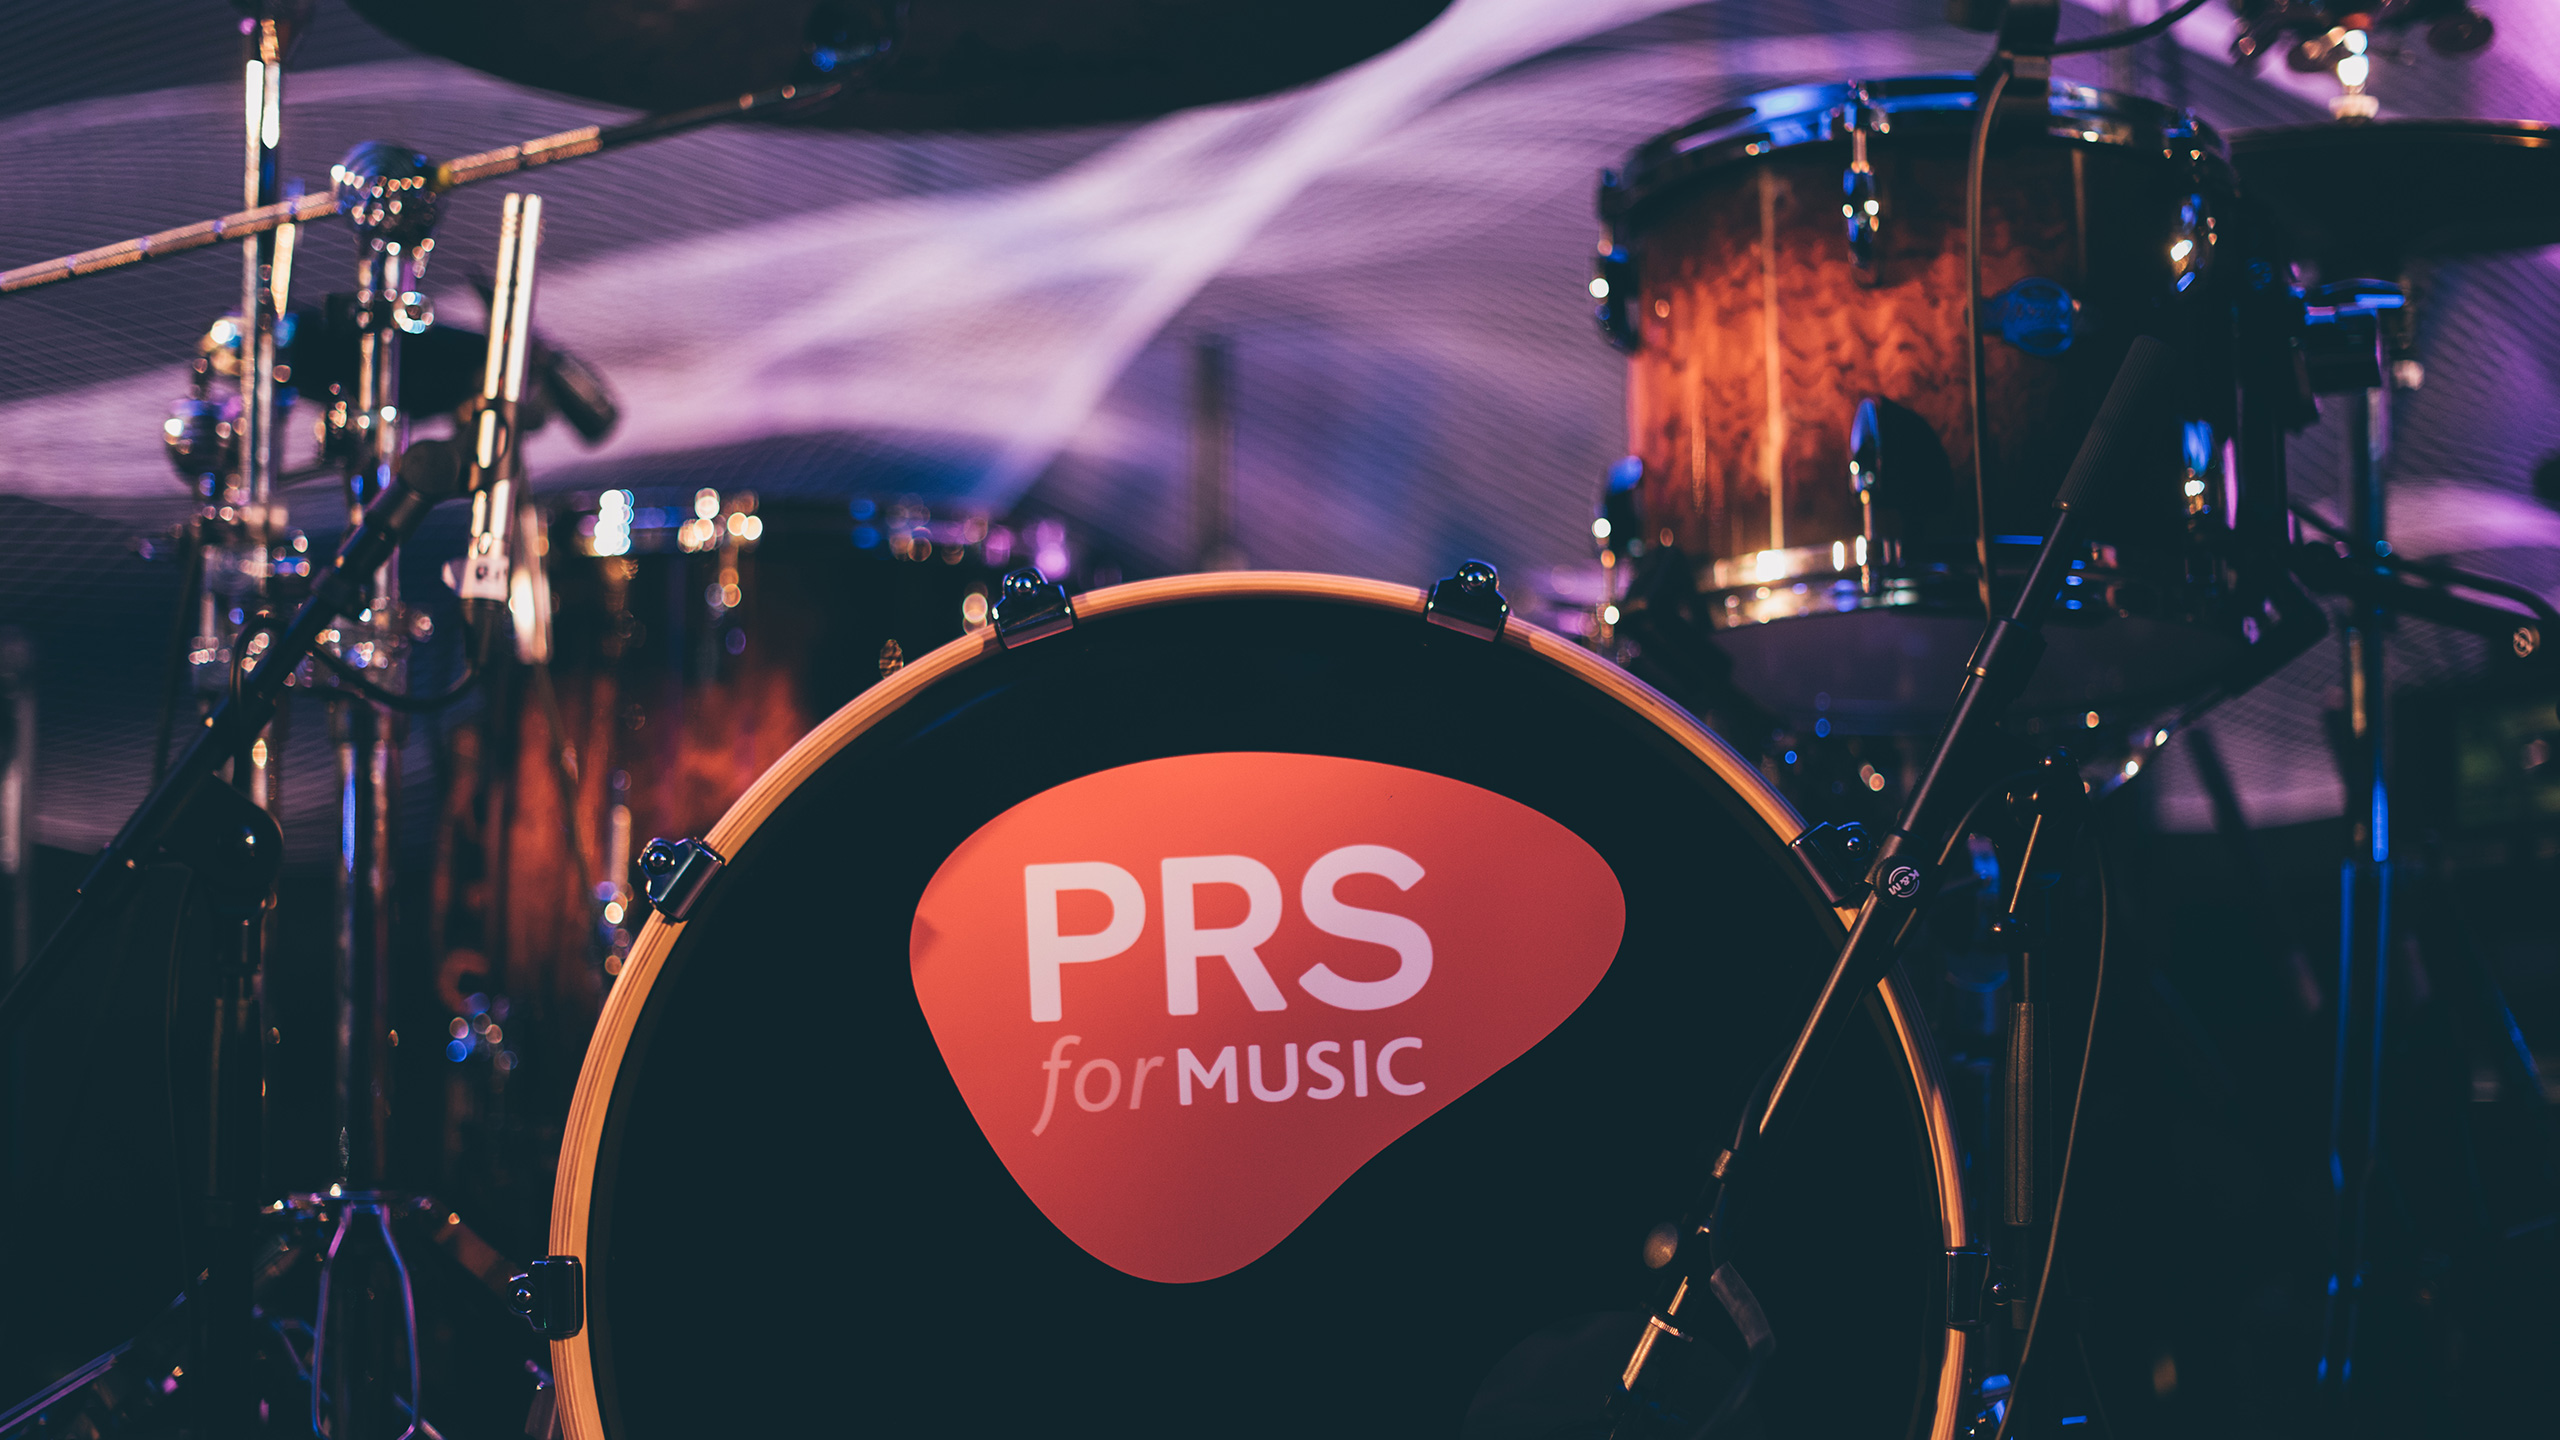 Drum kit with PRS for Music logo on the kick drum